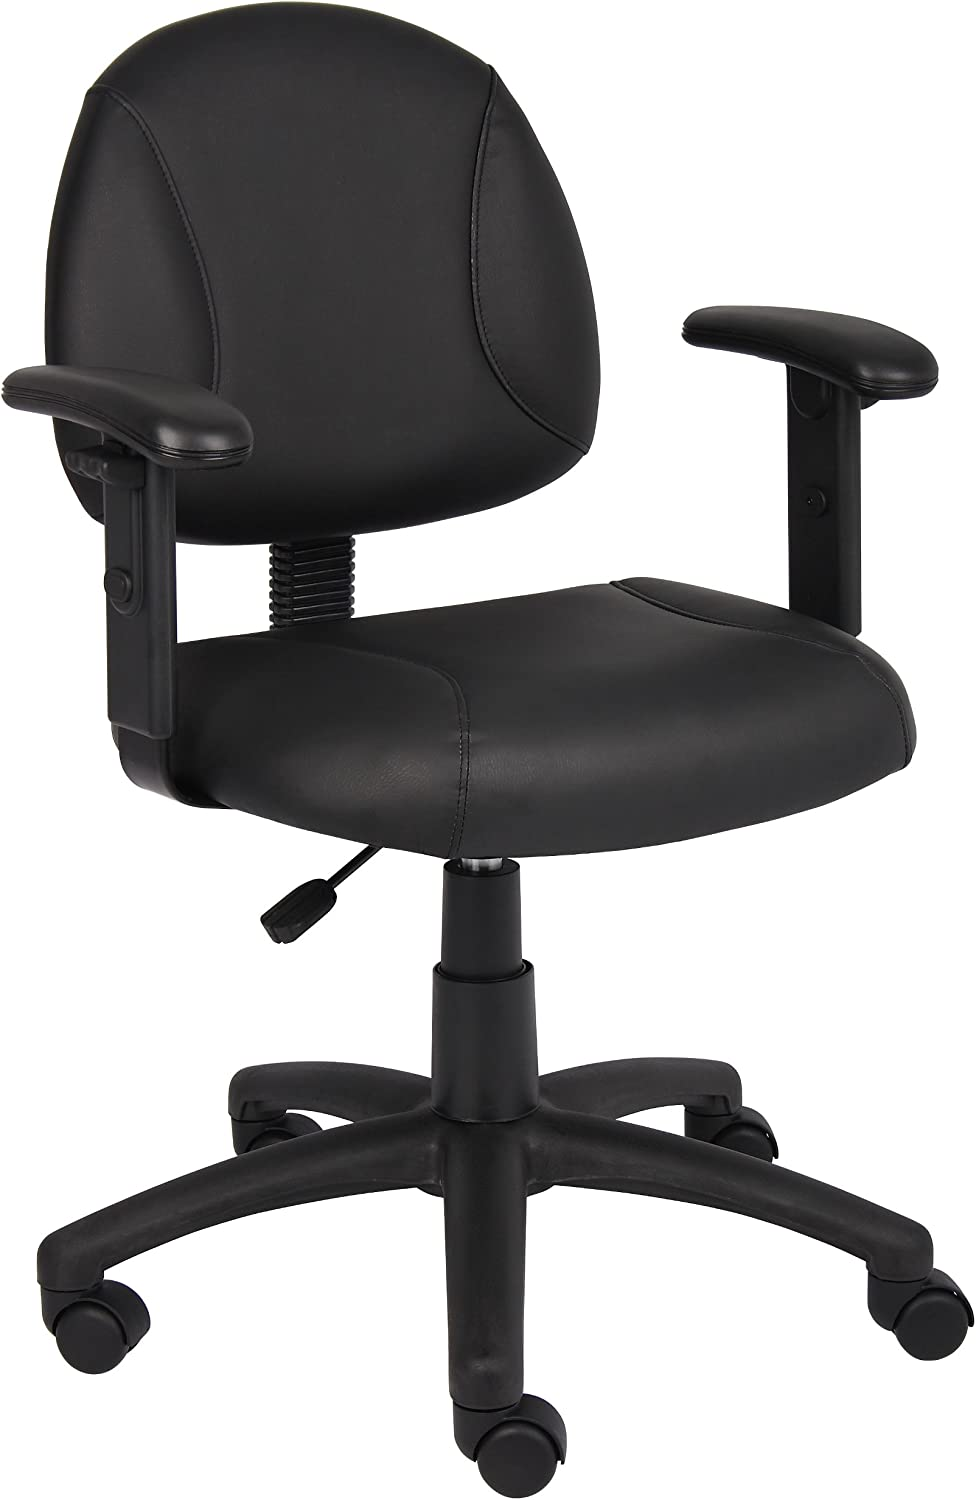 Boss Black Posture Chair W  Adjustable Arms